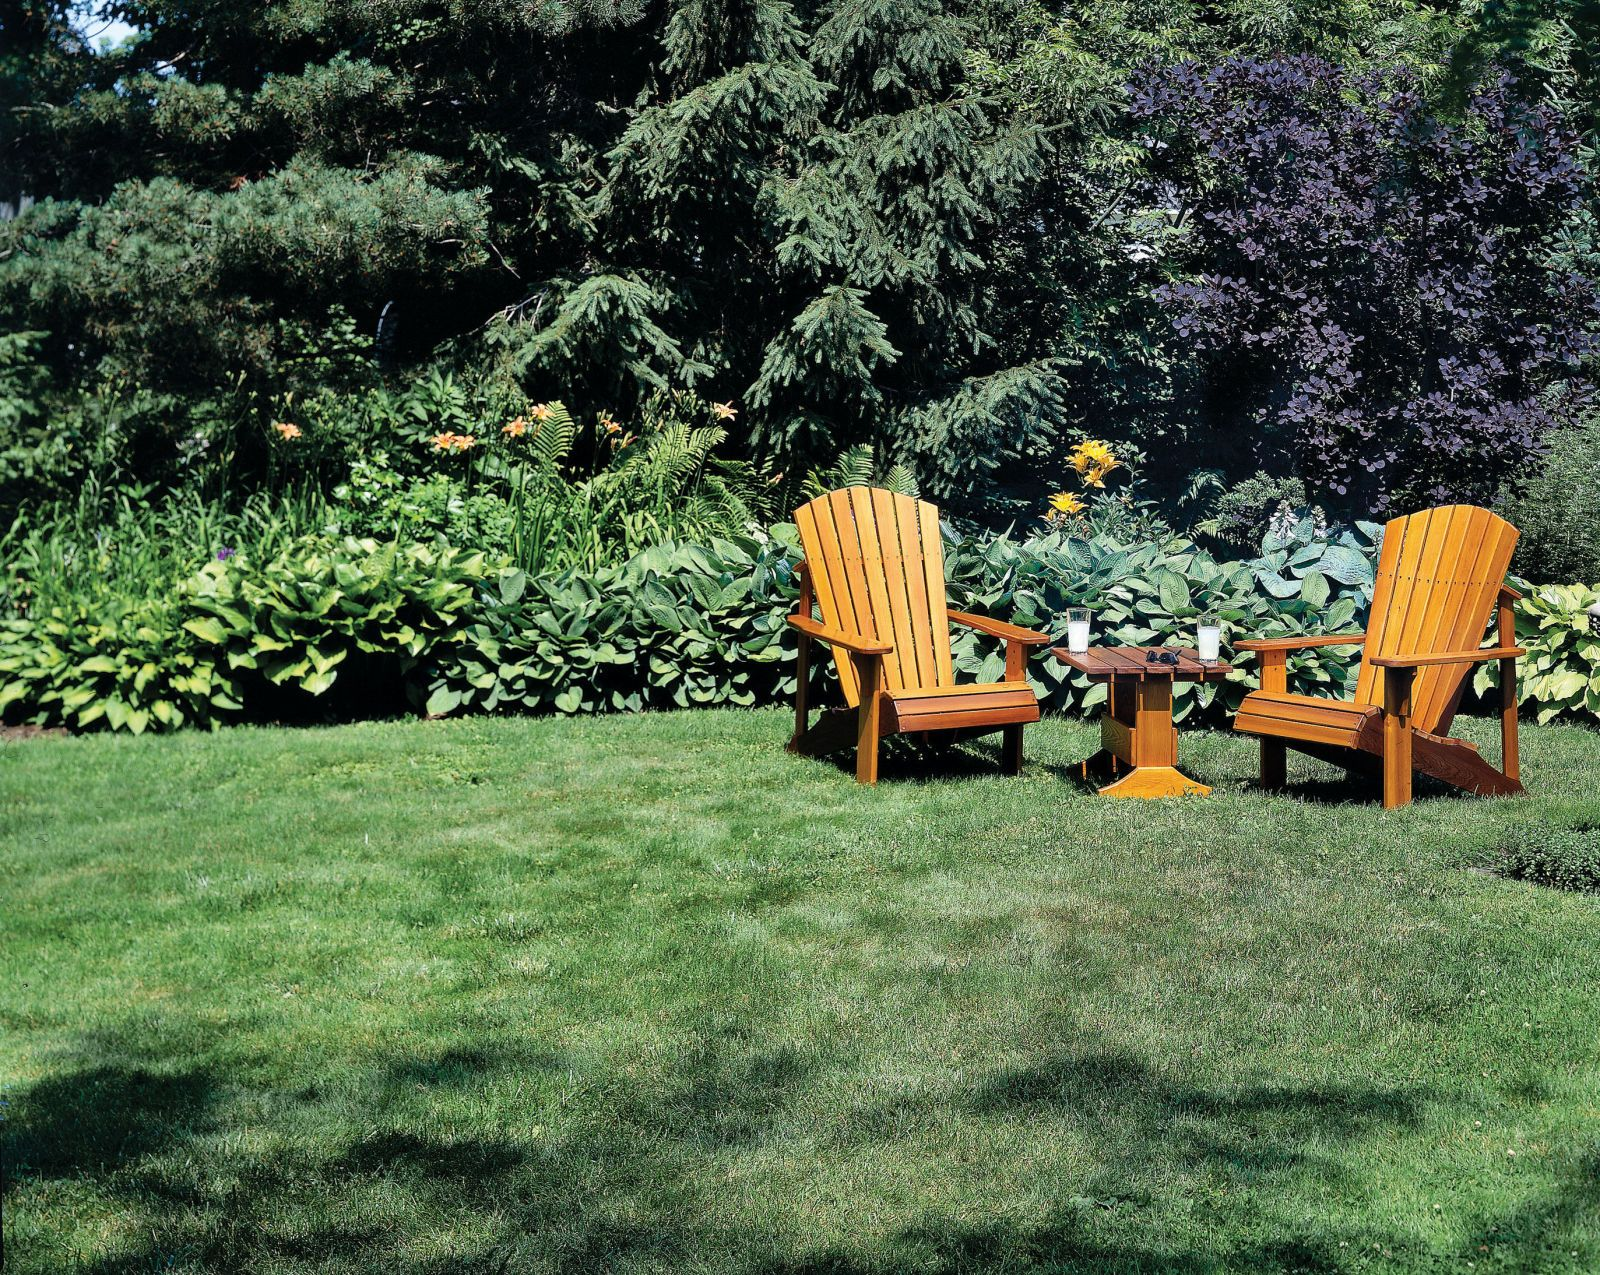 Easy Plans For Adirondack Chairs This Spring / Summer | Summer ...